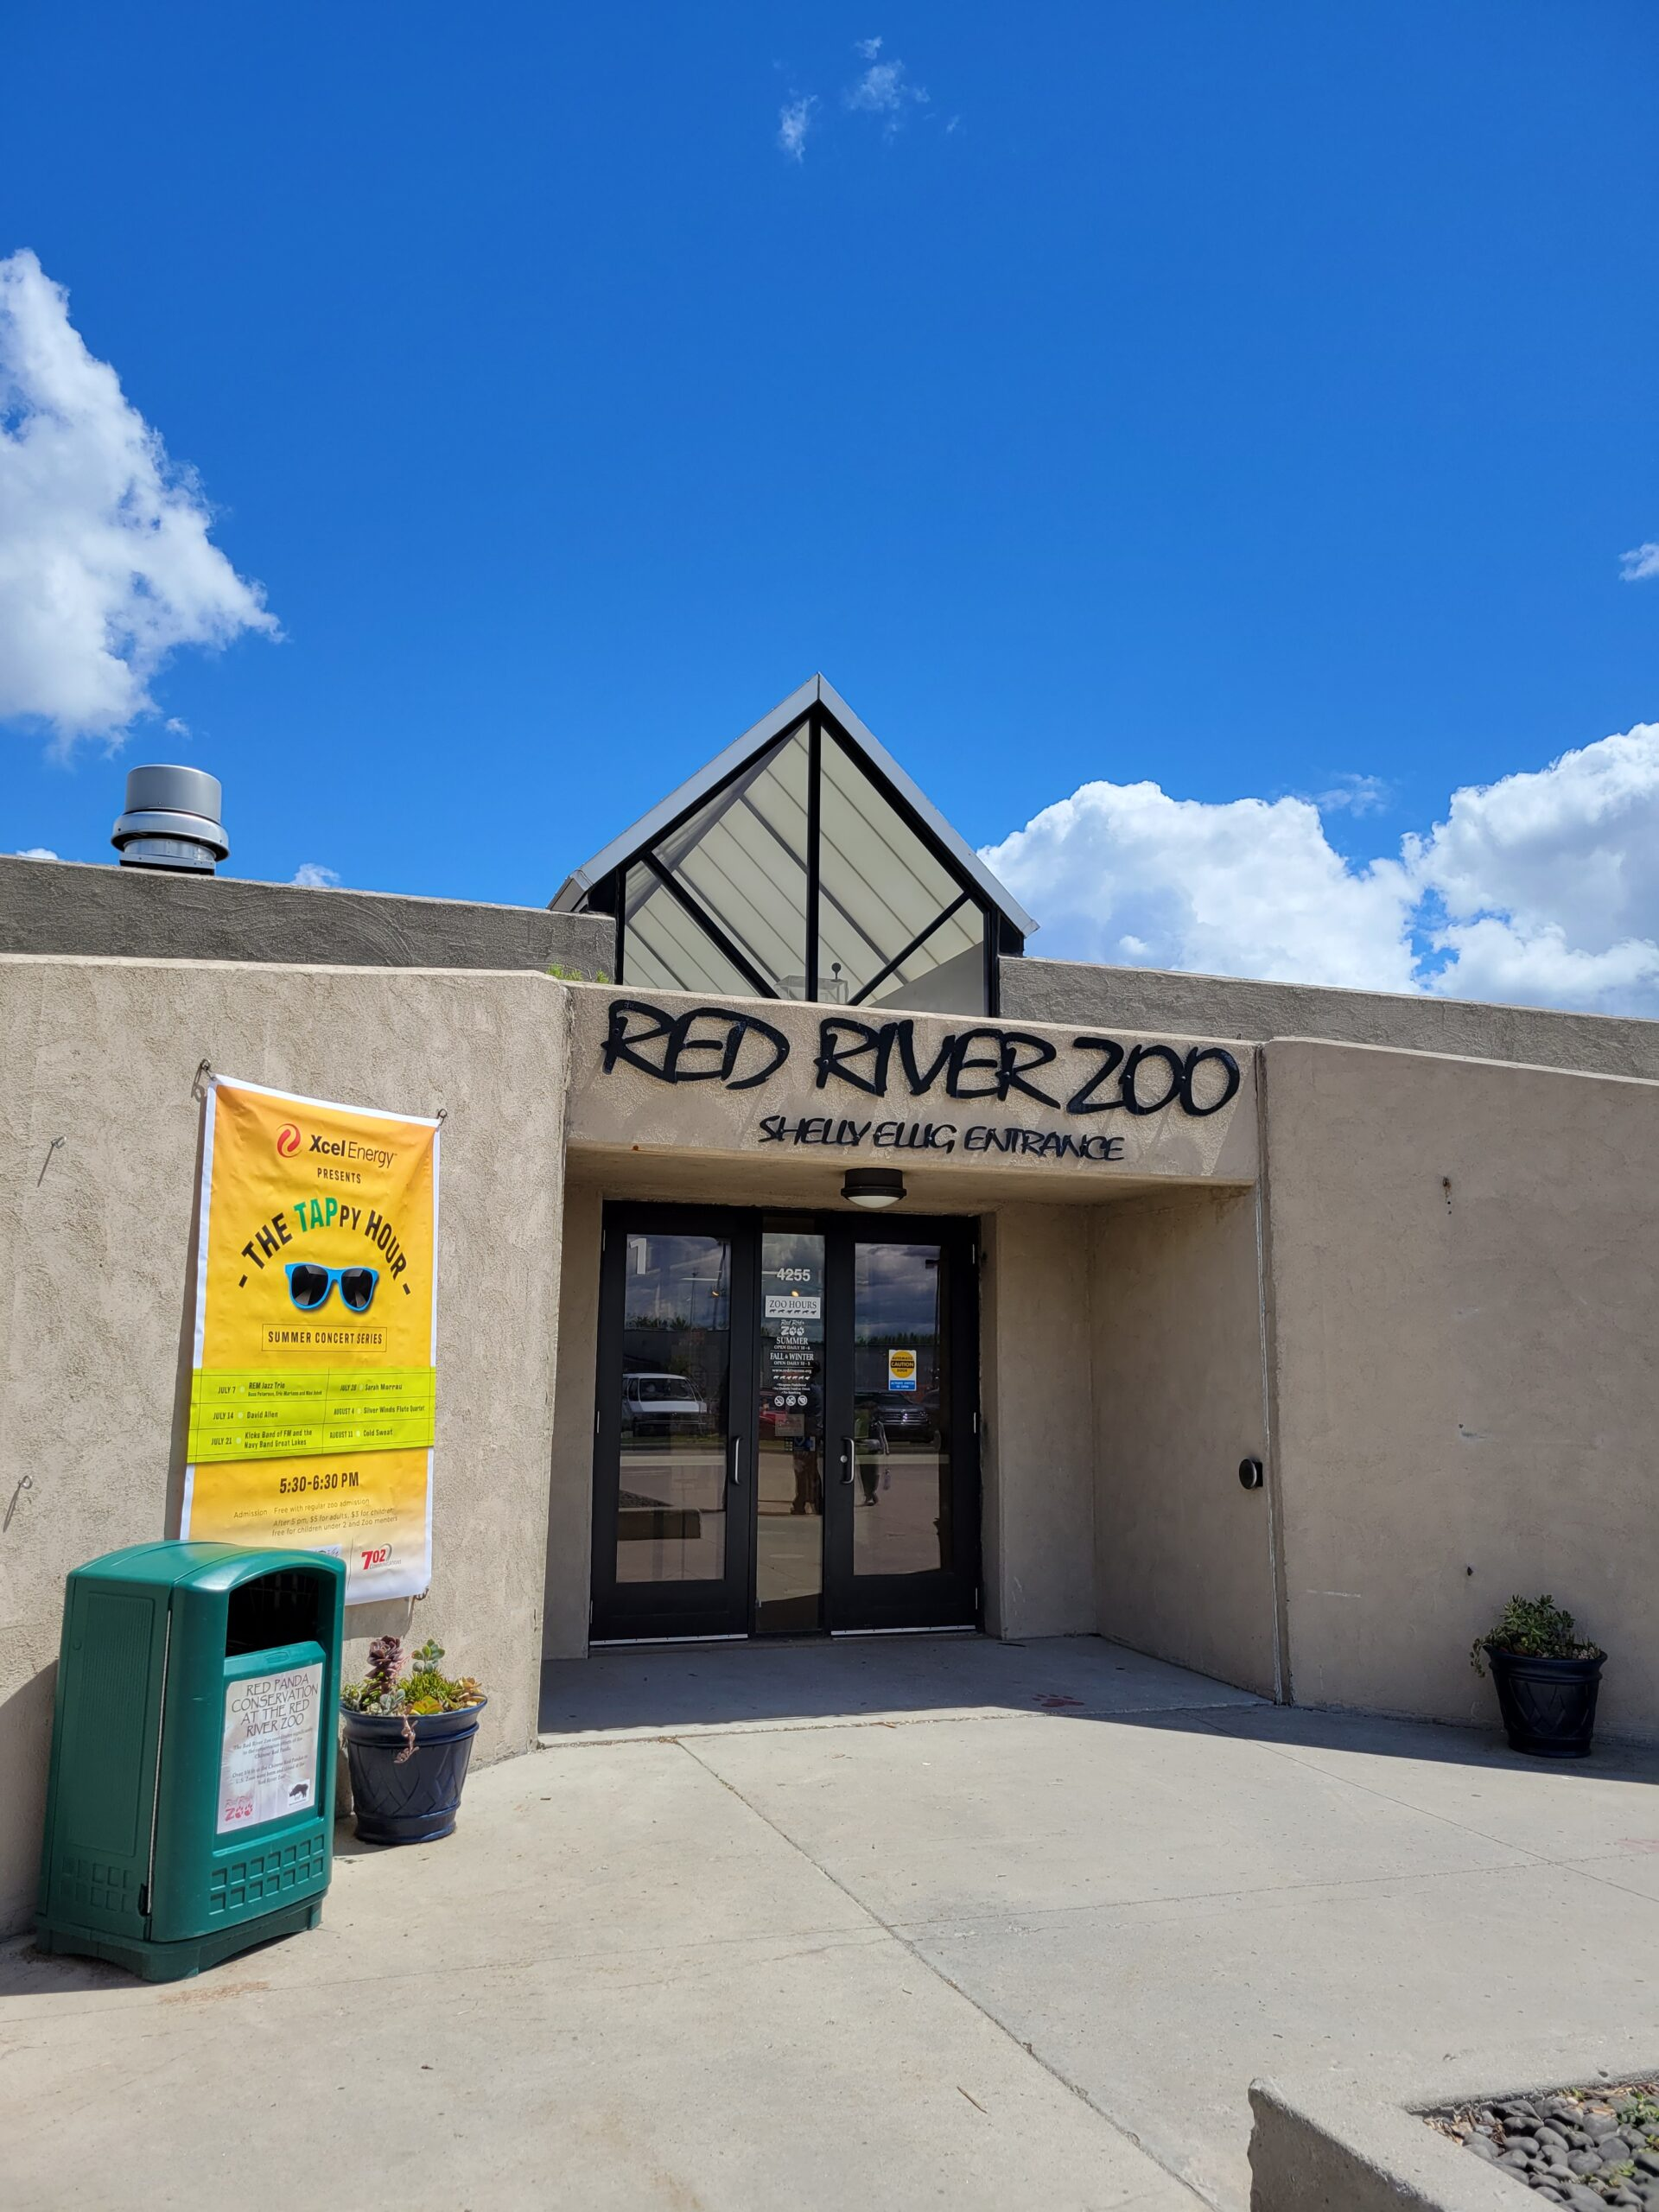 20210621 124729 scaled - The Red River Zoo, Fargo